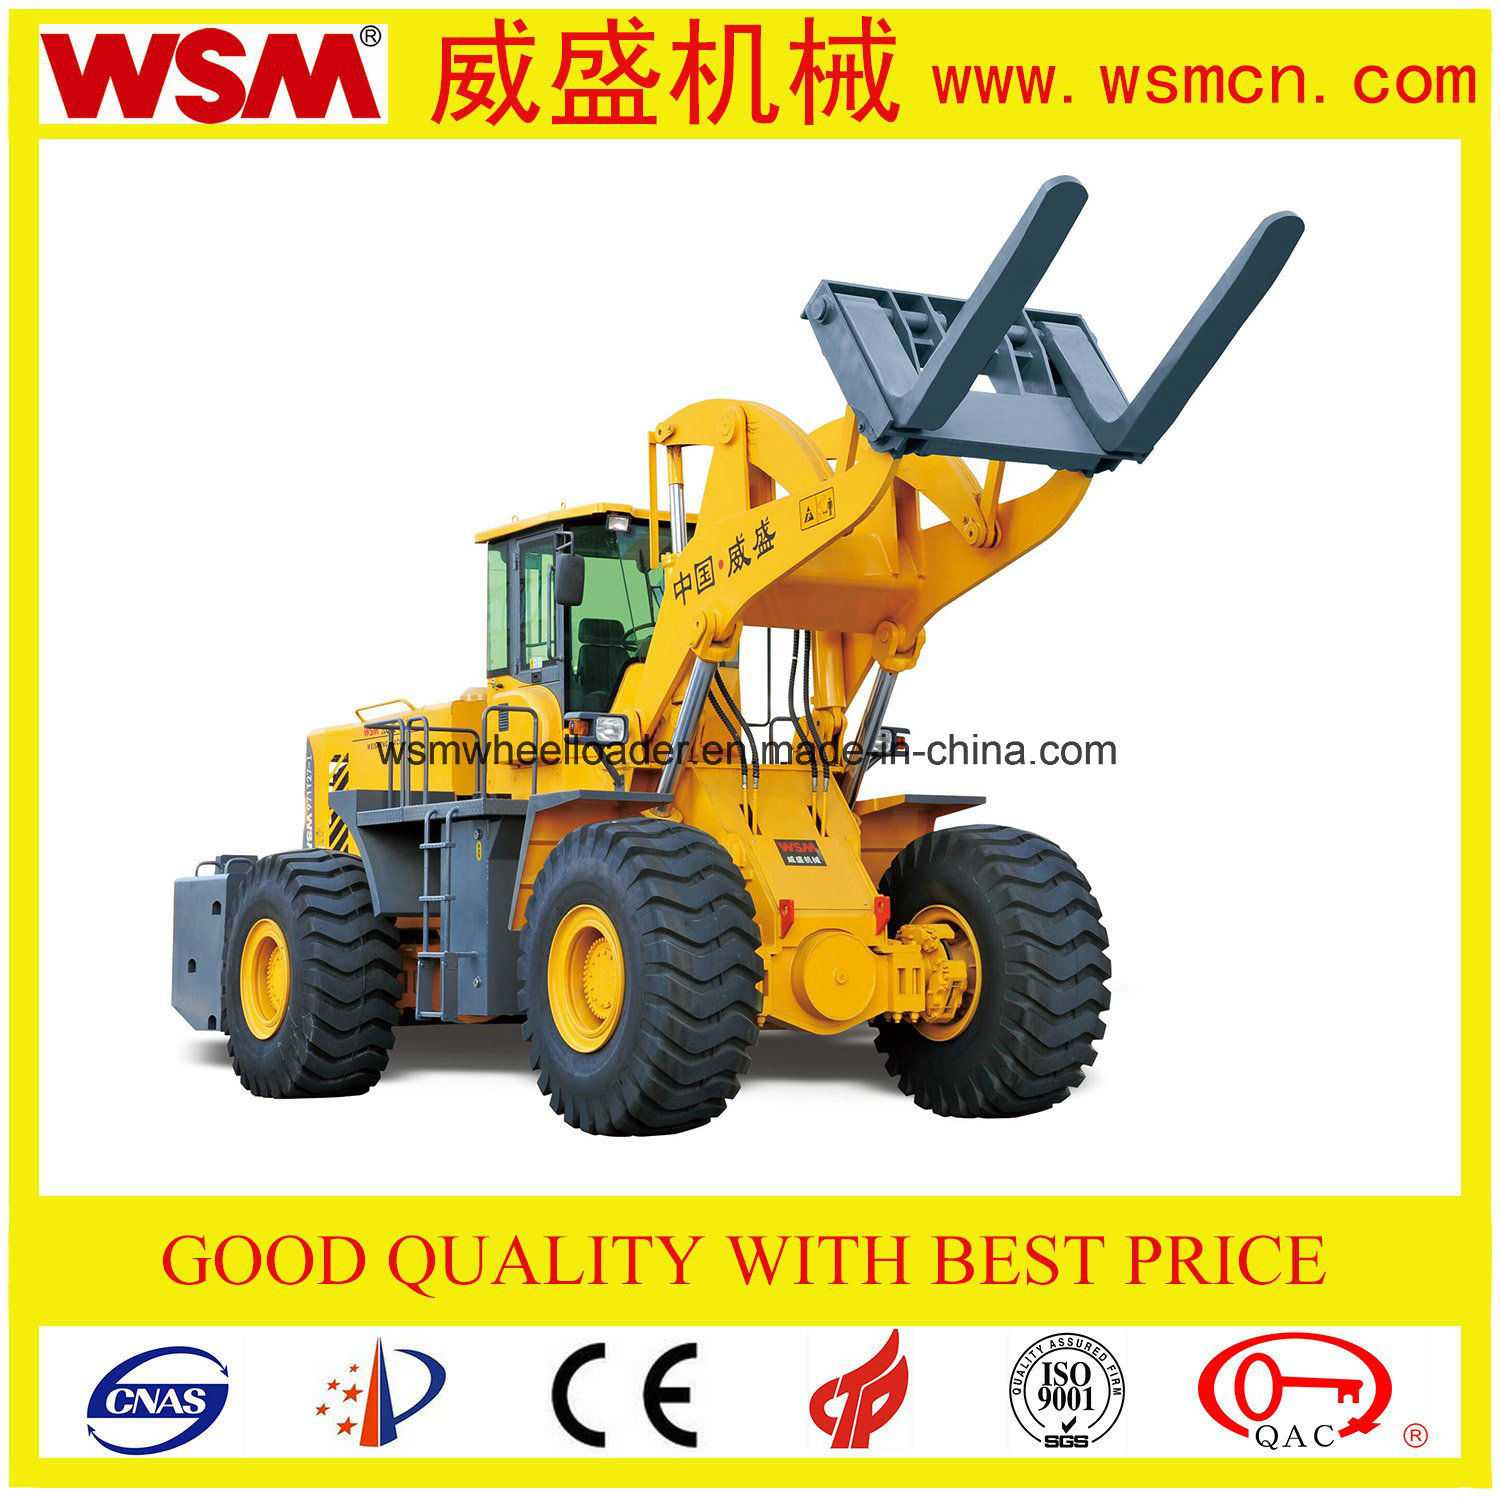 27 Tons Wheel Forklift Loader for Block Lifting Using at Quarry Ce